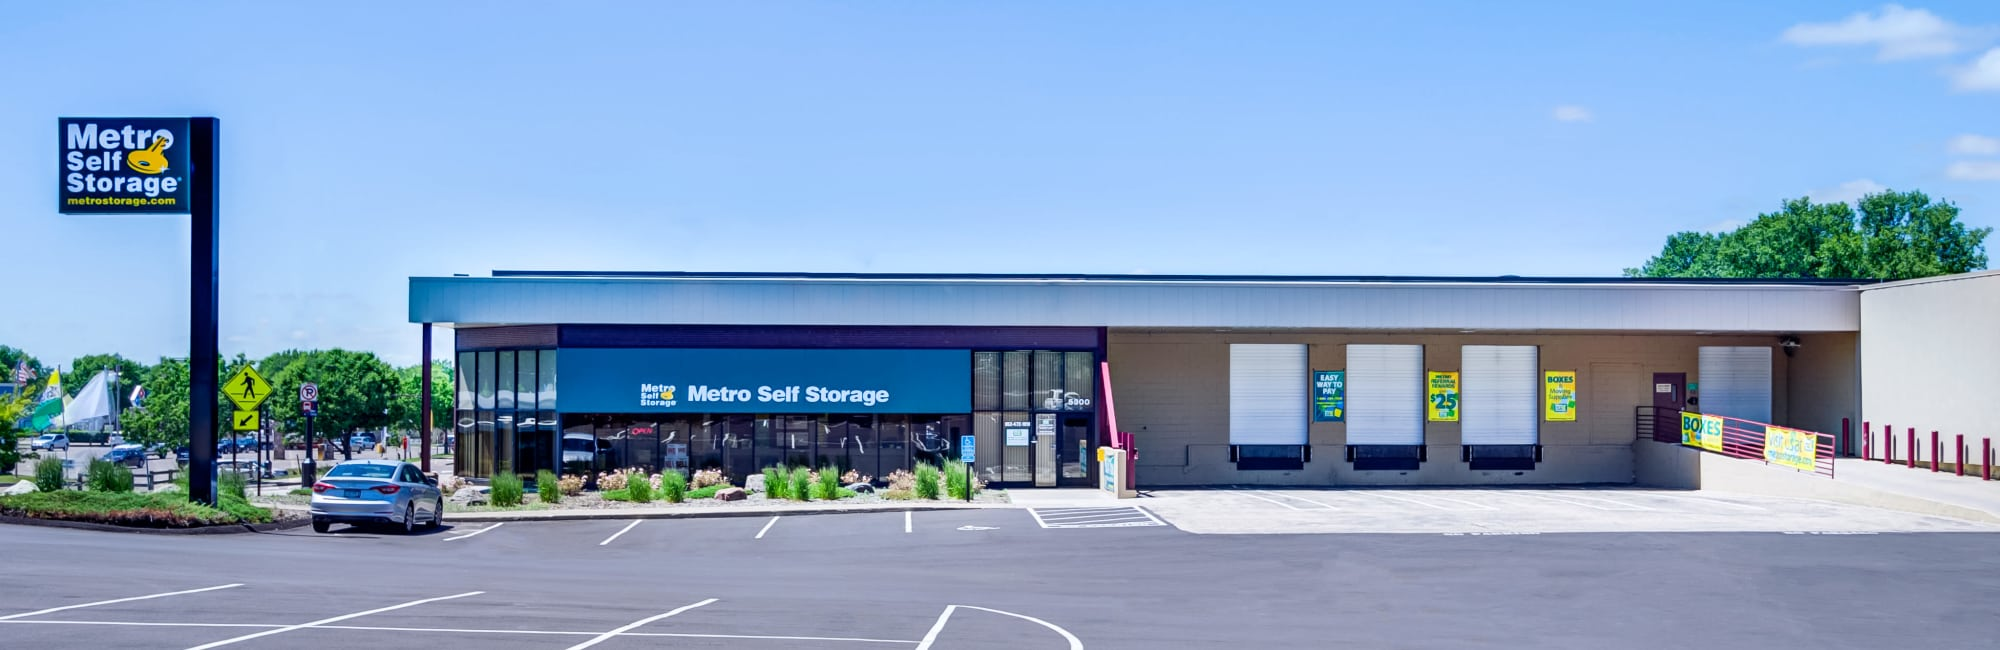 Metro Self Storage in Mound, MN